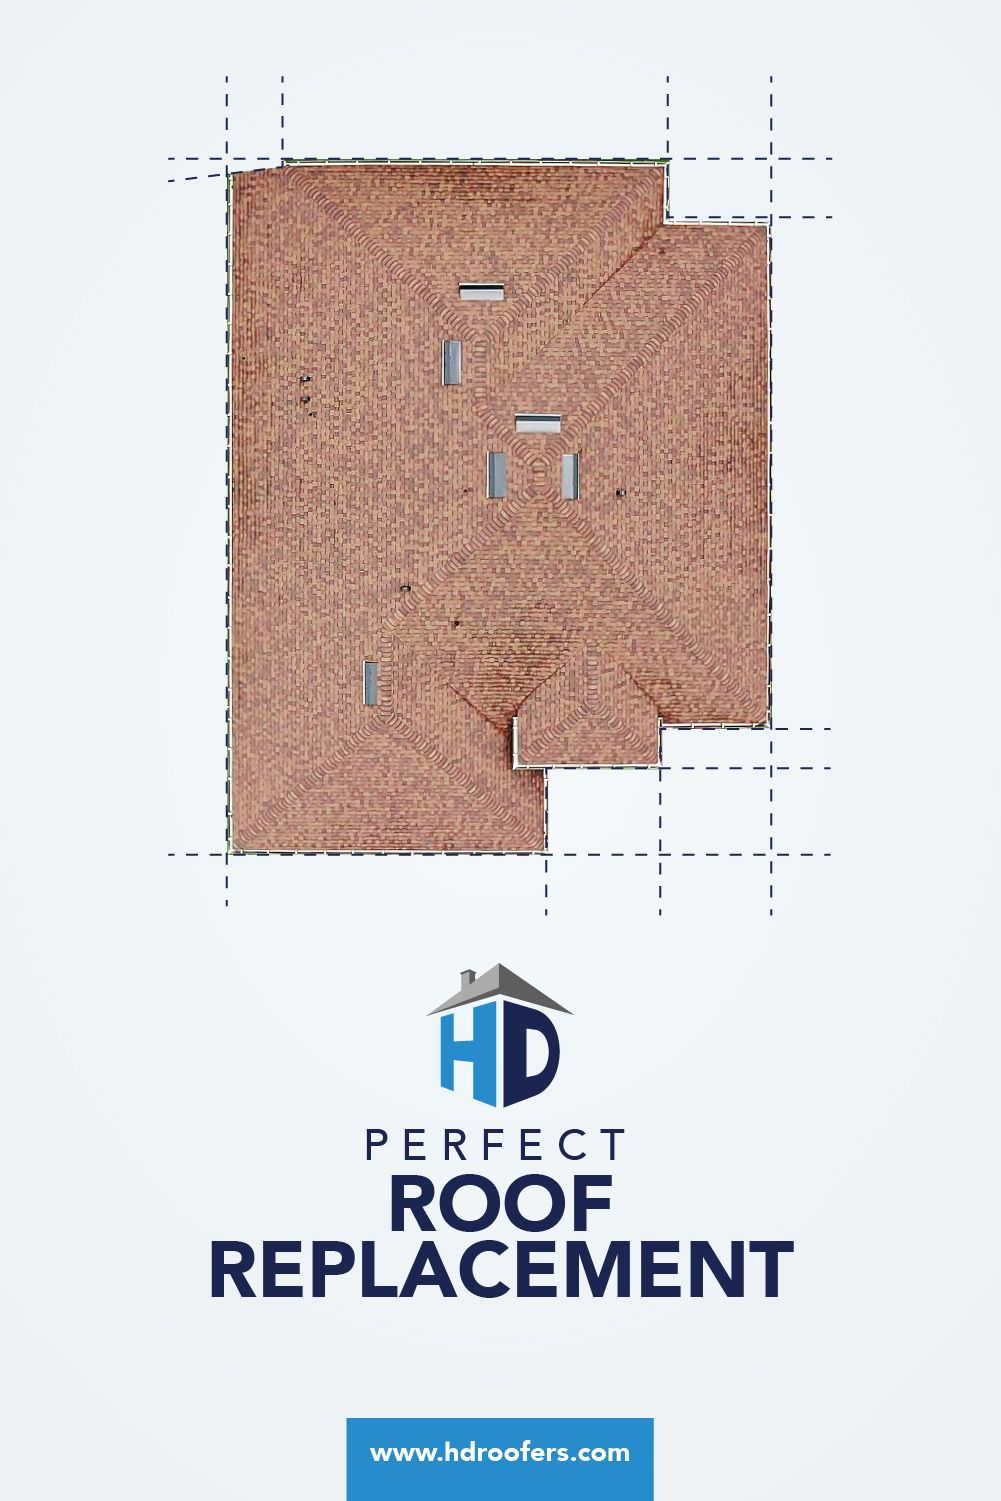 We Are The Roof Replacement Experts Don T Worry About Replacement Costs We Can Help You With Your Insurance Claim In 2020 Best Roofing Company Roofing Construction